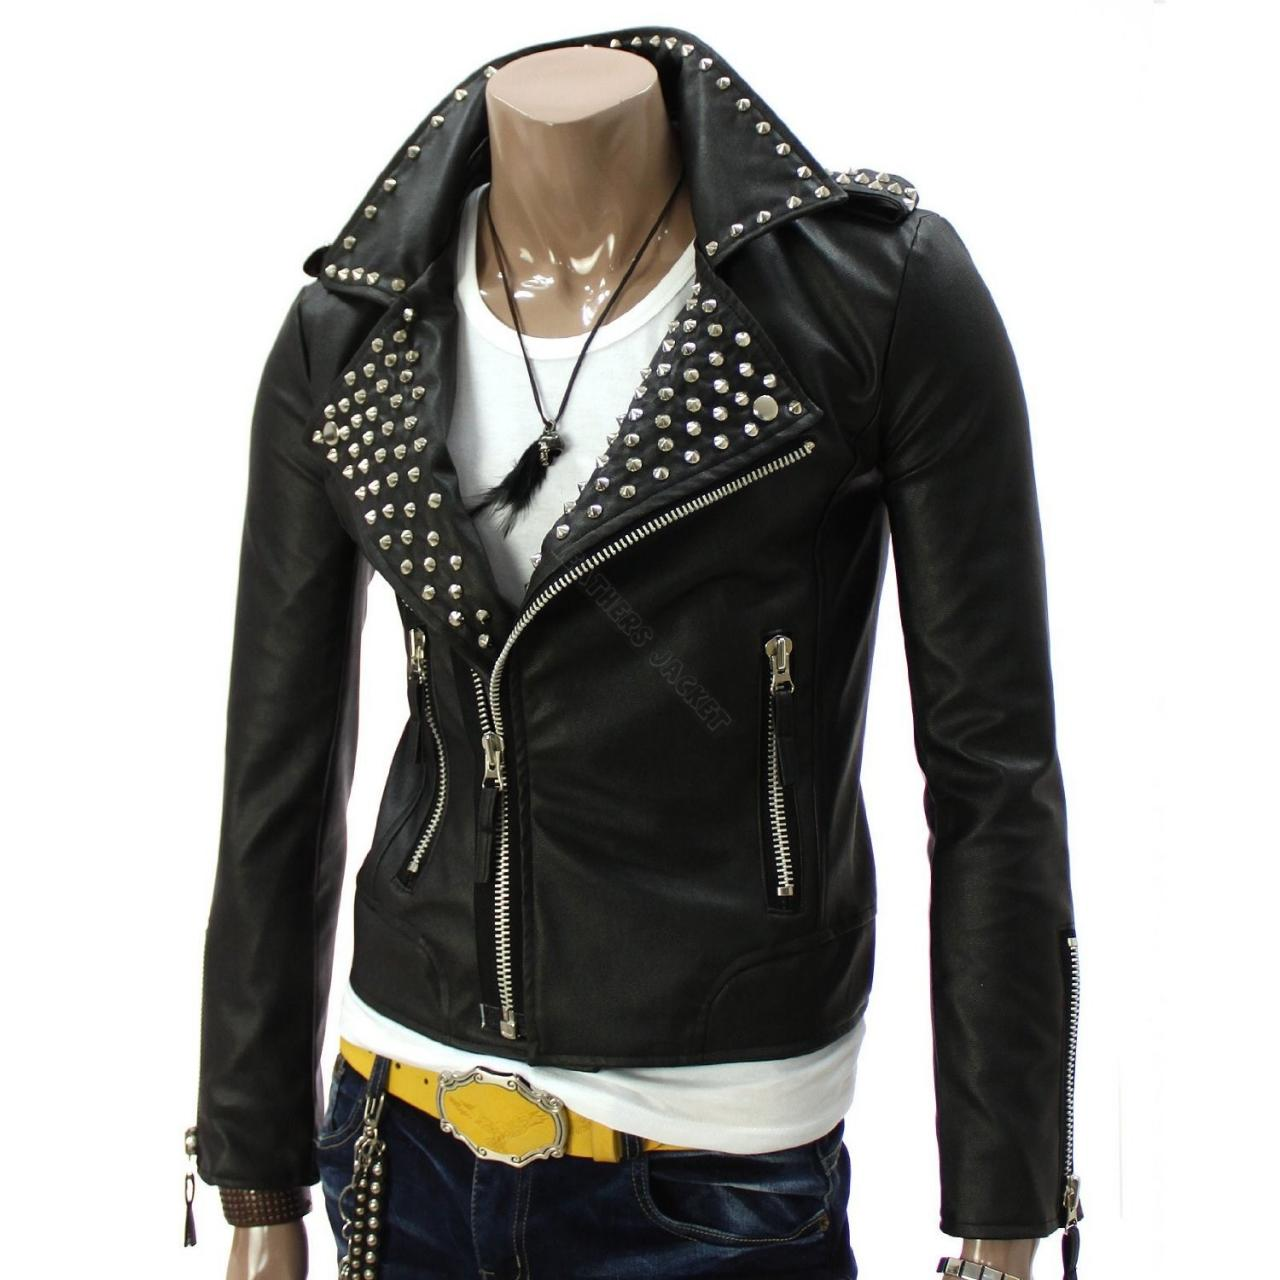 Men's Black Genuine Leather Jacket with High Quality Silver Studs